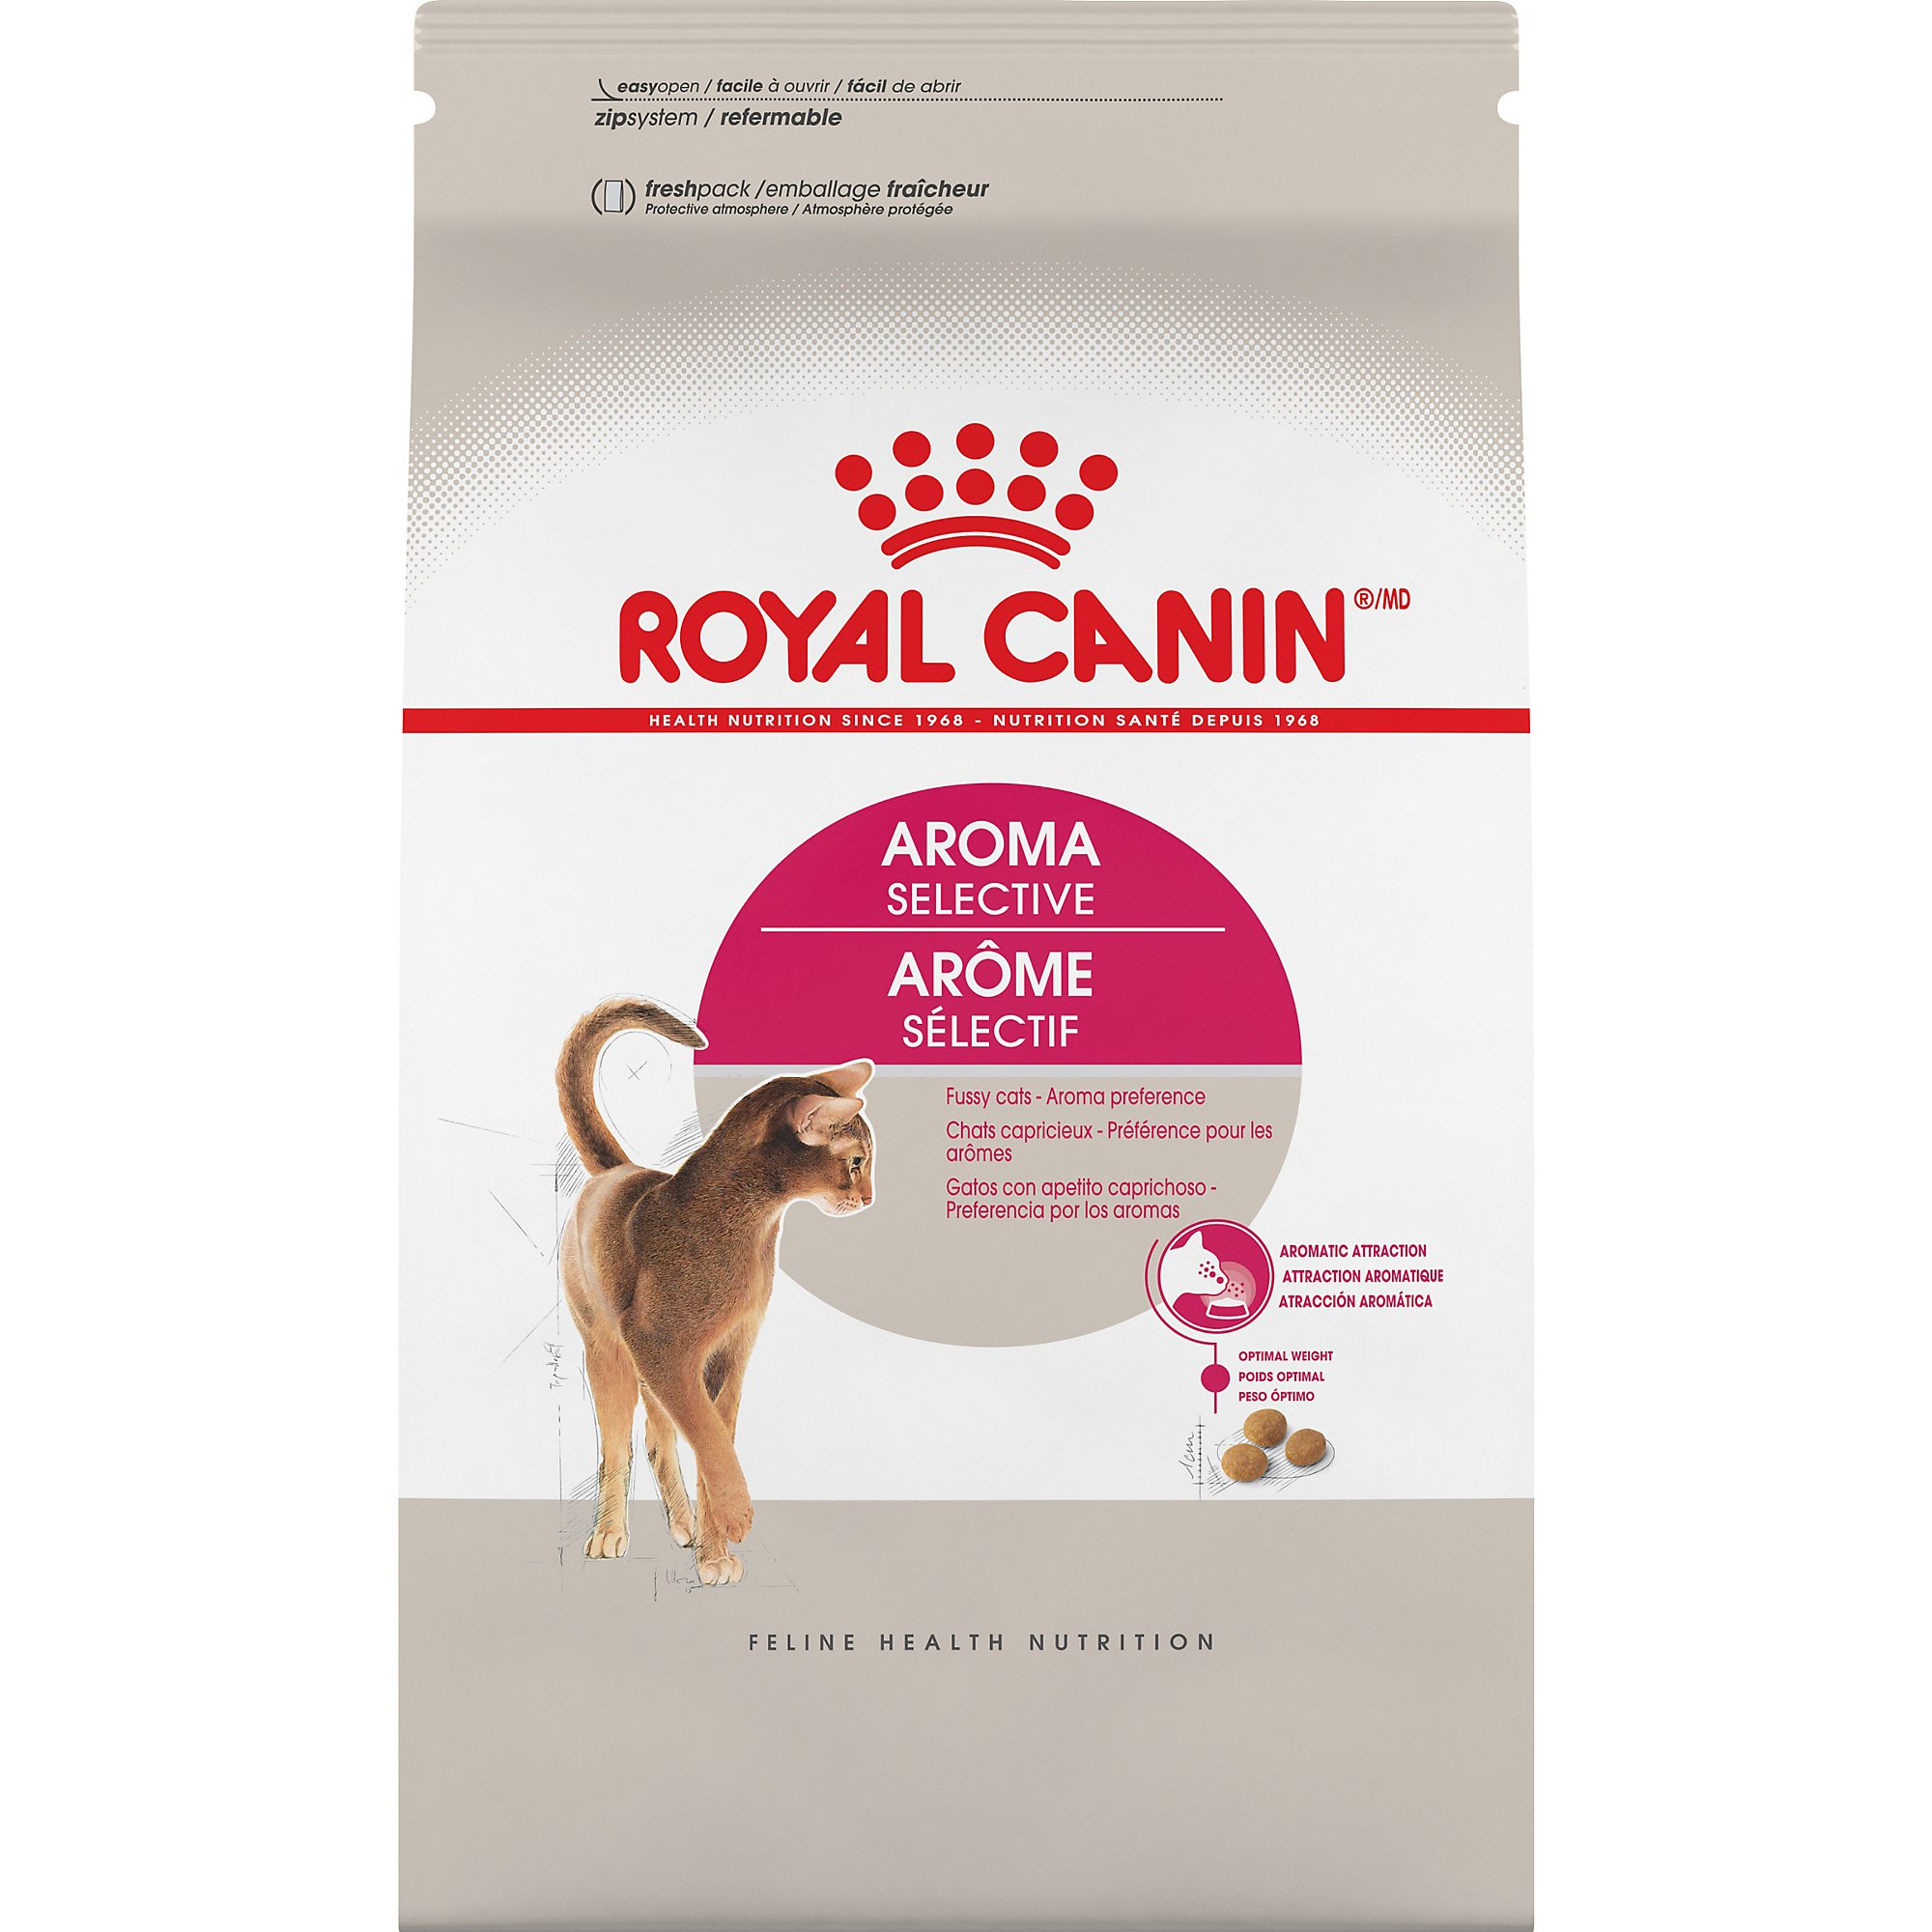 Royal Canin Feline Health Nutrition Selective 31 Aromatic Attraction Adult Dry Cat Food